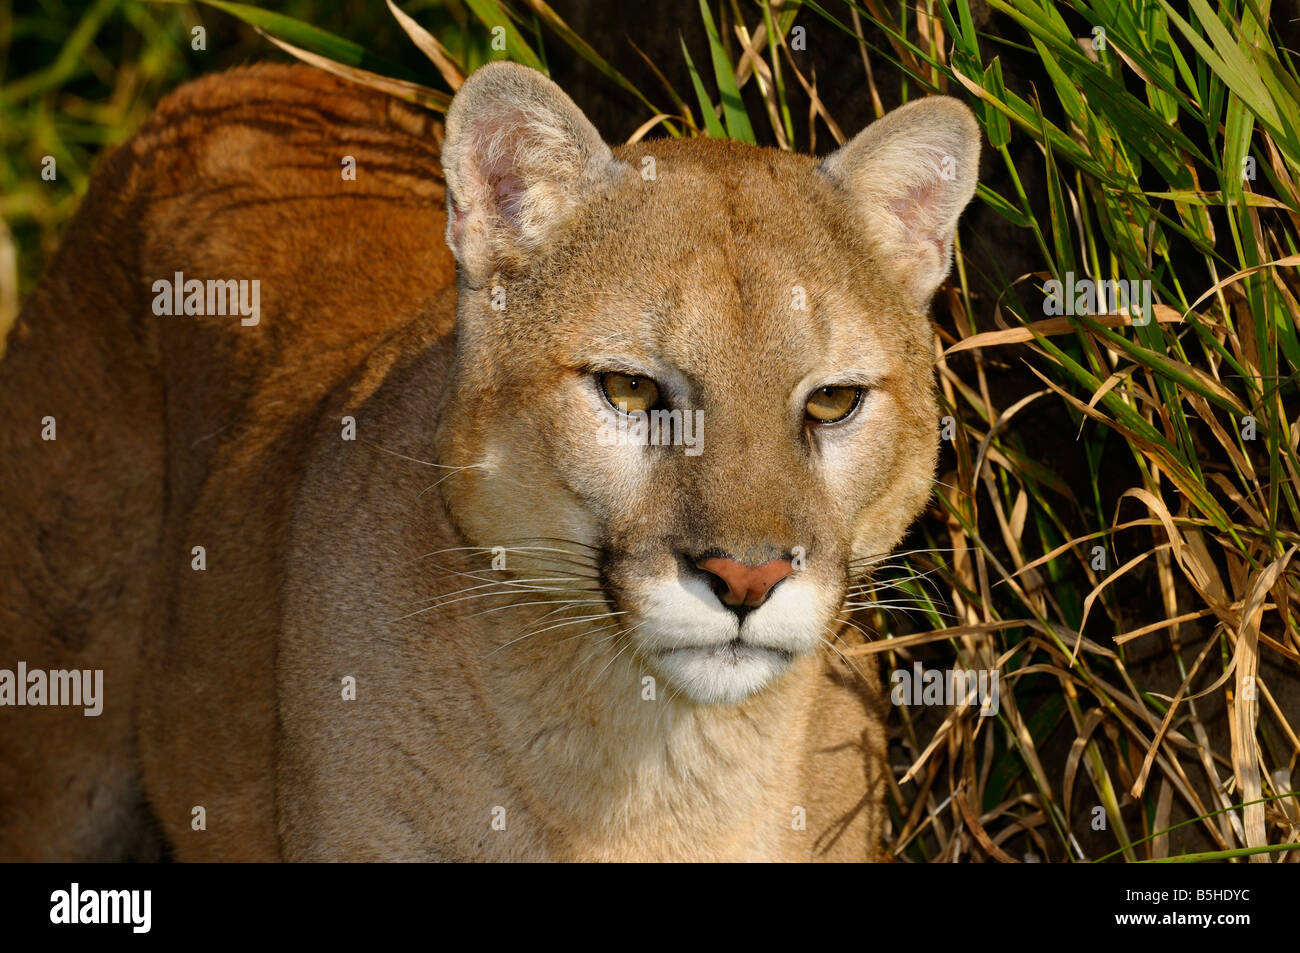 Close up of a Mountain Lion stalking prey in tall grass - Stock Image